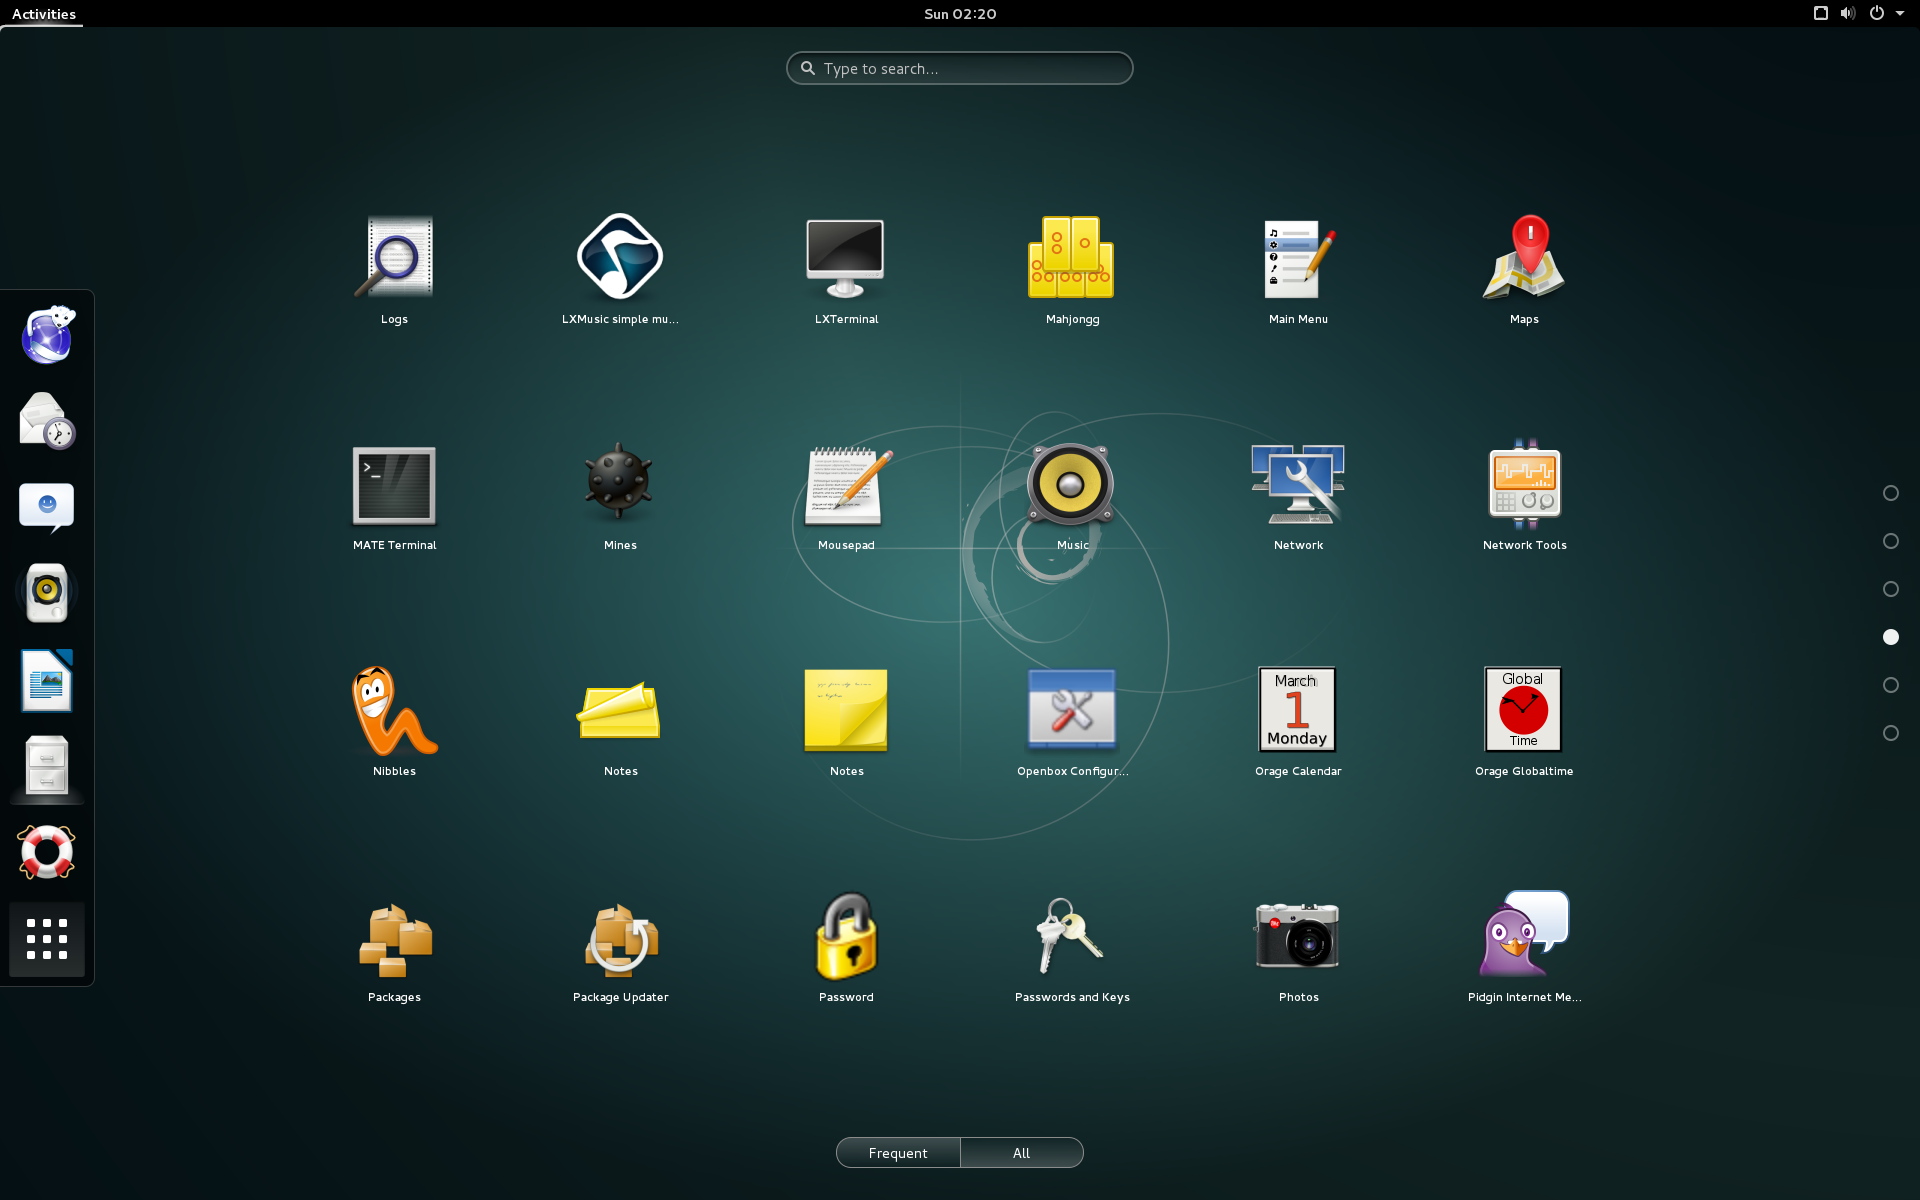 Debian 8 with Gnome 3 desktop